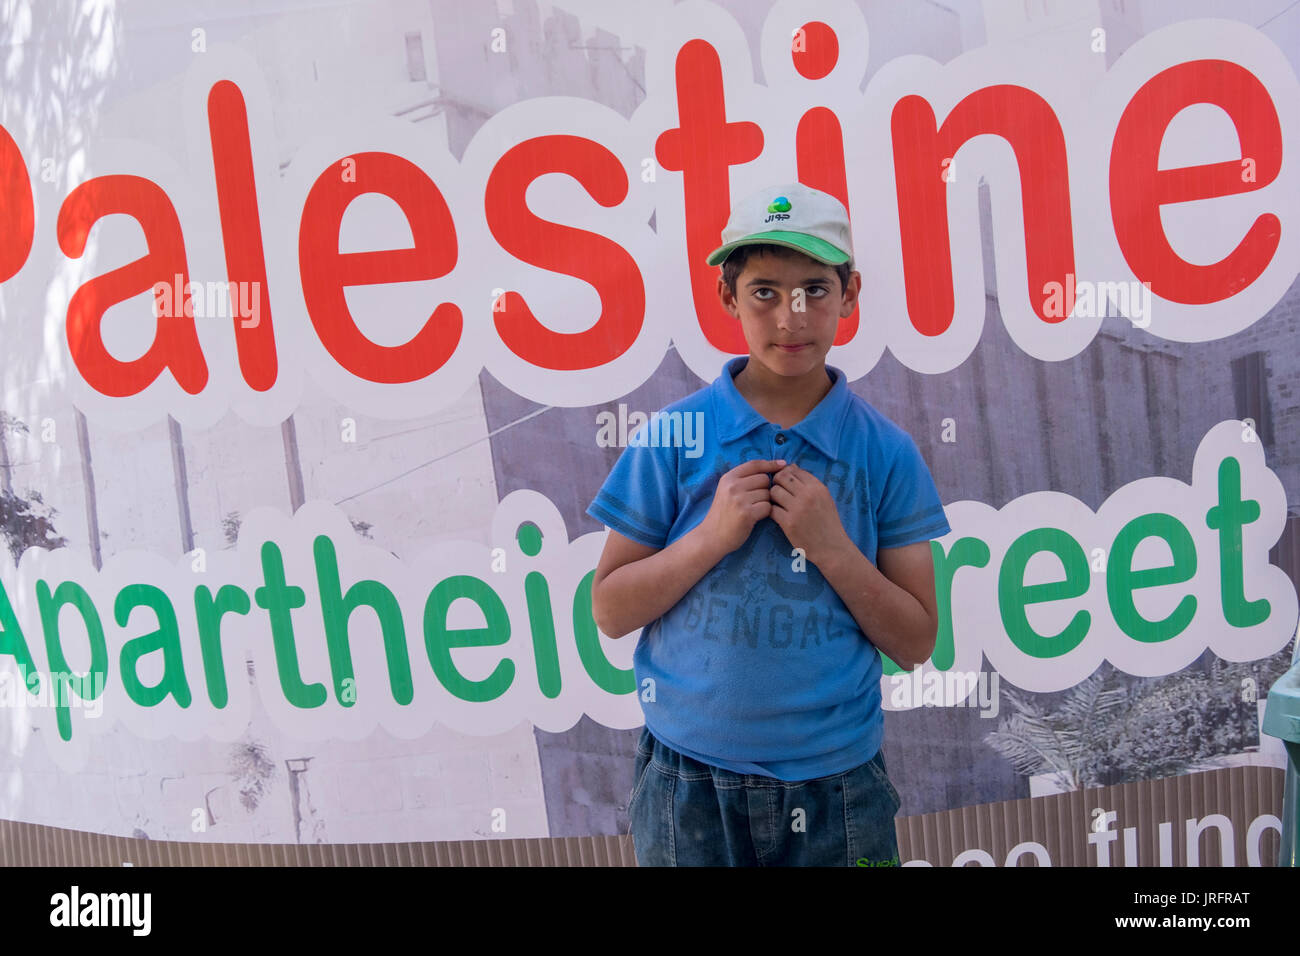 Young Palestinian boy standing in front of a sign protesting the closure of a central street in Hebron, West Bank, Occupied Territories - Stock Image